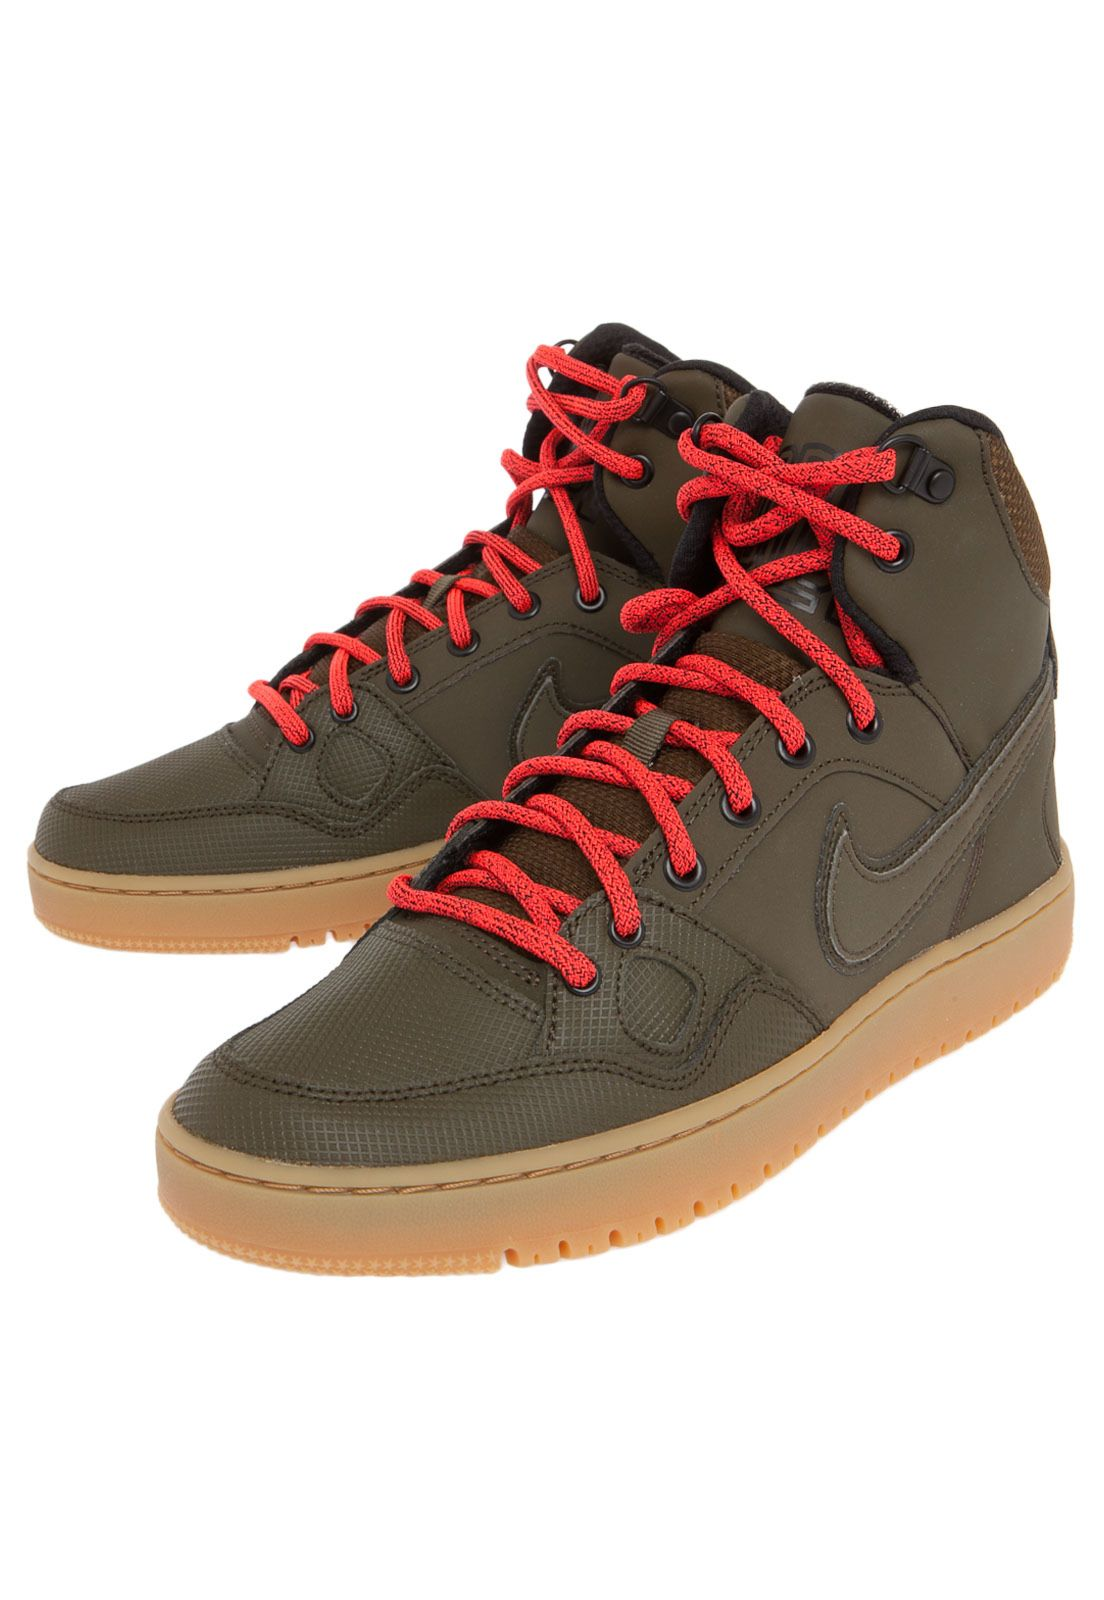 2b690c59e Tênis Nike Son Of Force Mid Winter Verde - Marca Nike